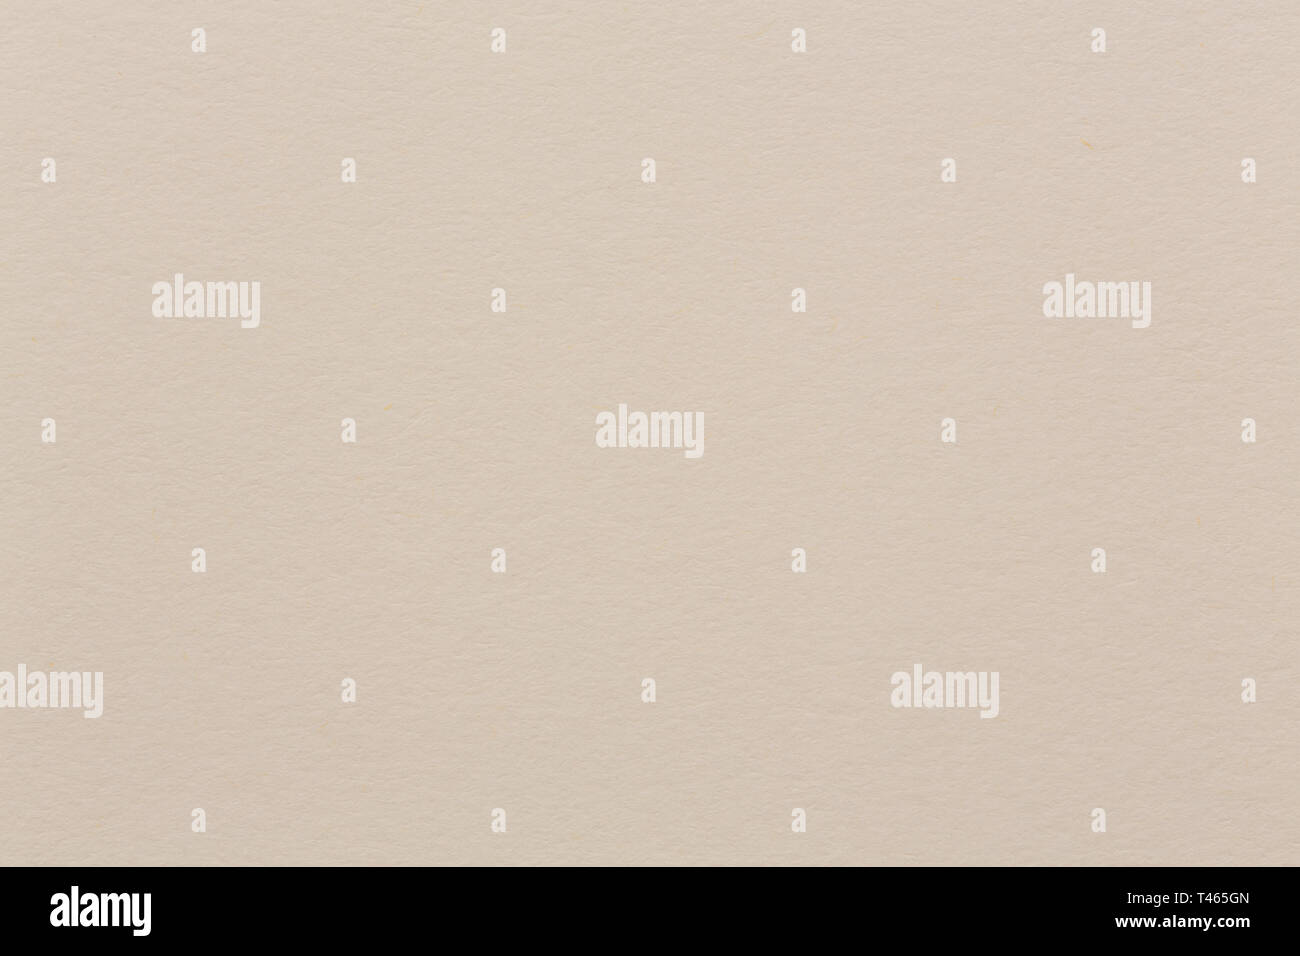 Close up of watercolor beige paper for background usage. - Stock Image